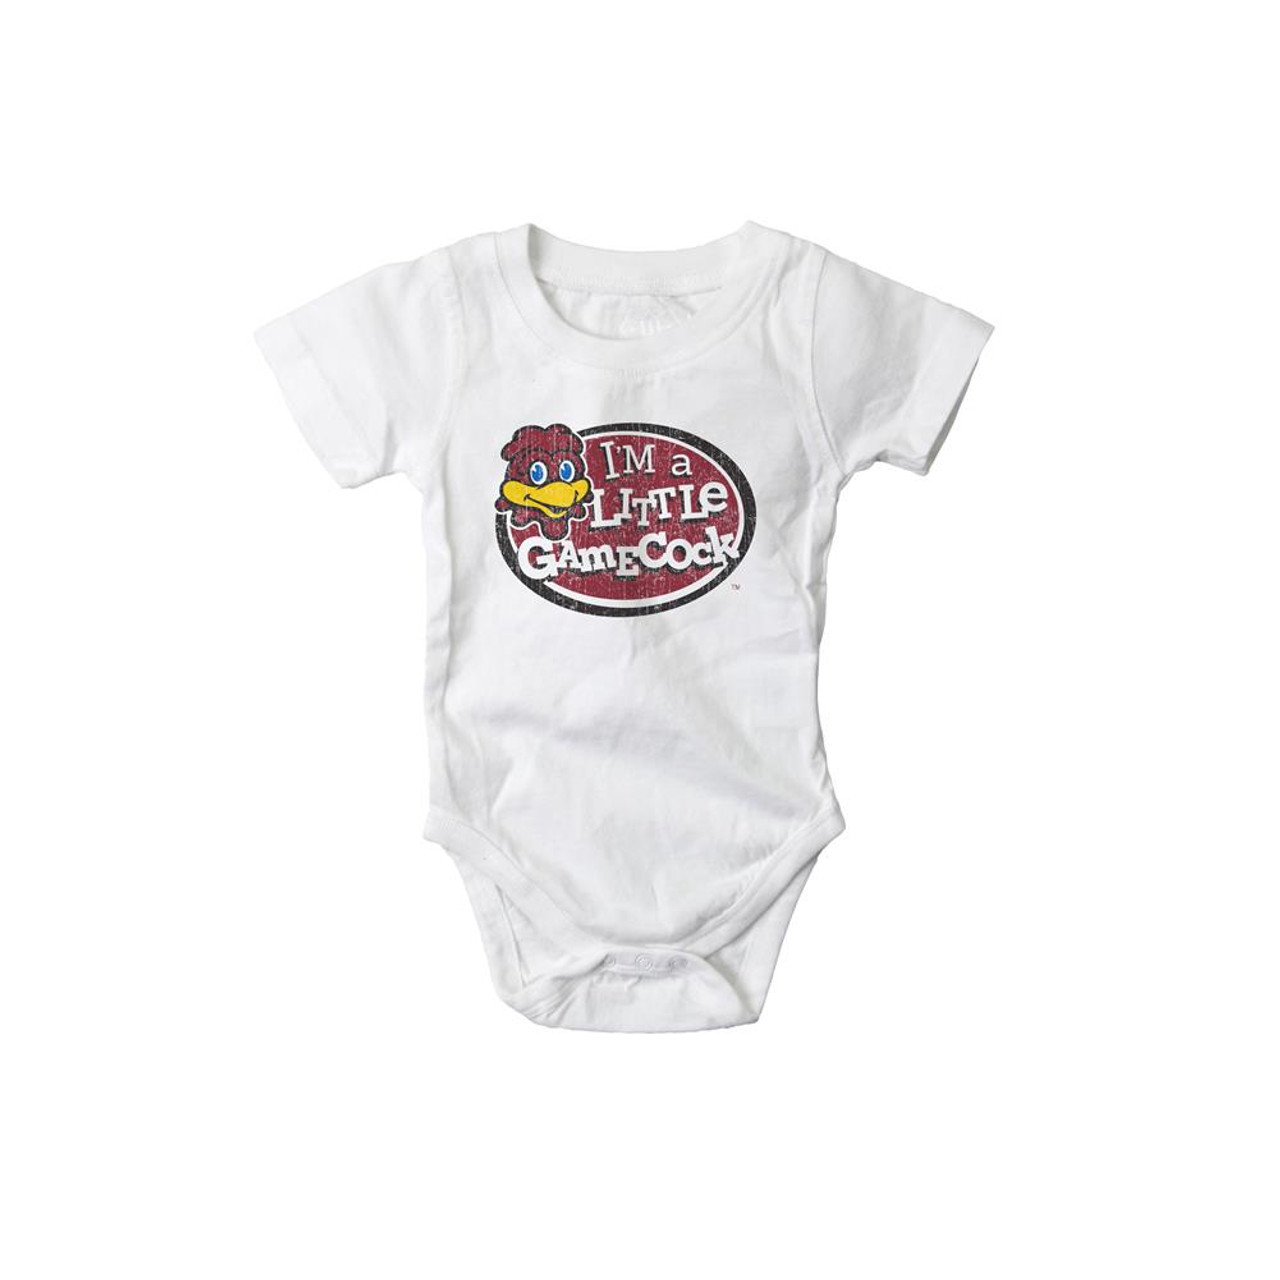 Infant South Carolina Gamecocks Bodysuits 3 Pack Organic Cotton Set